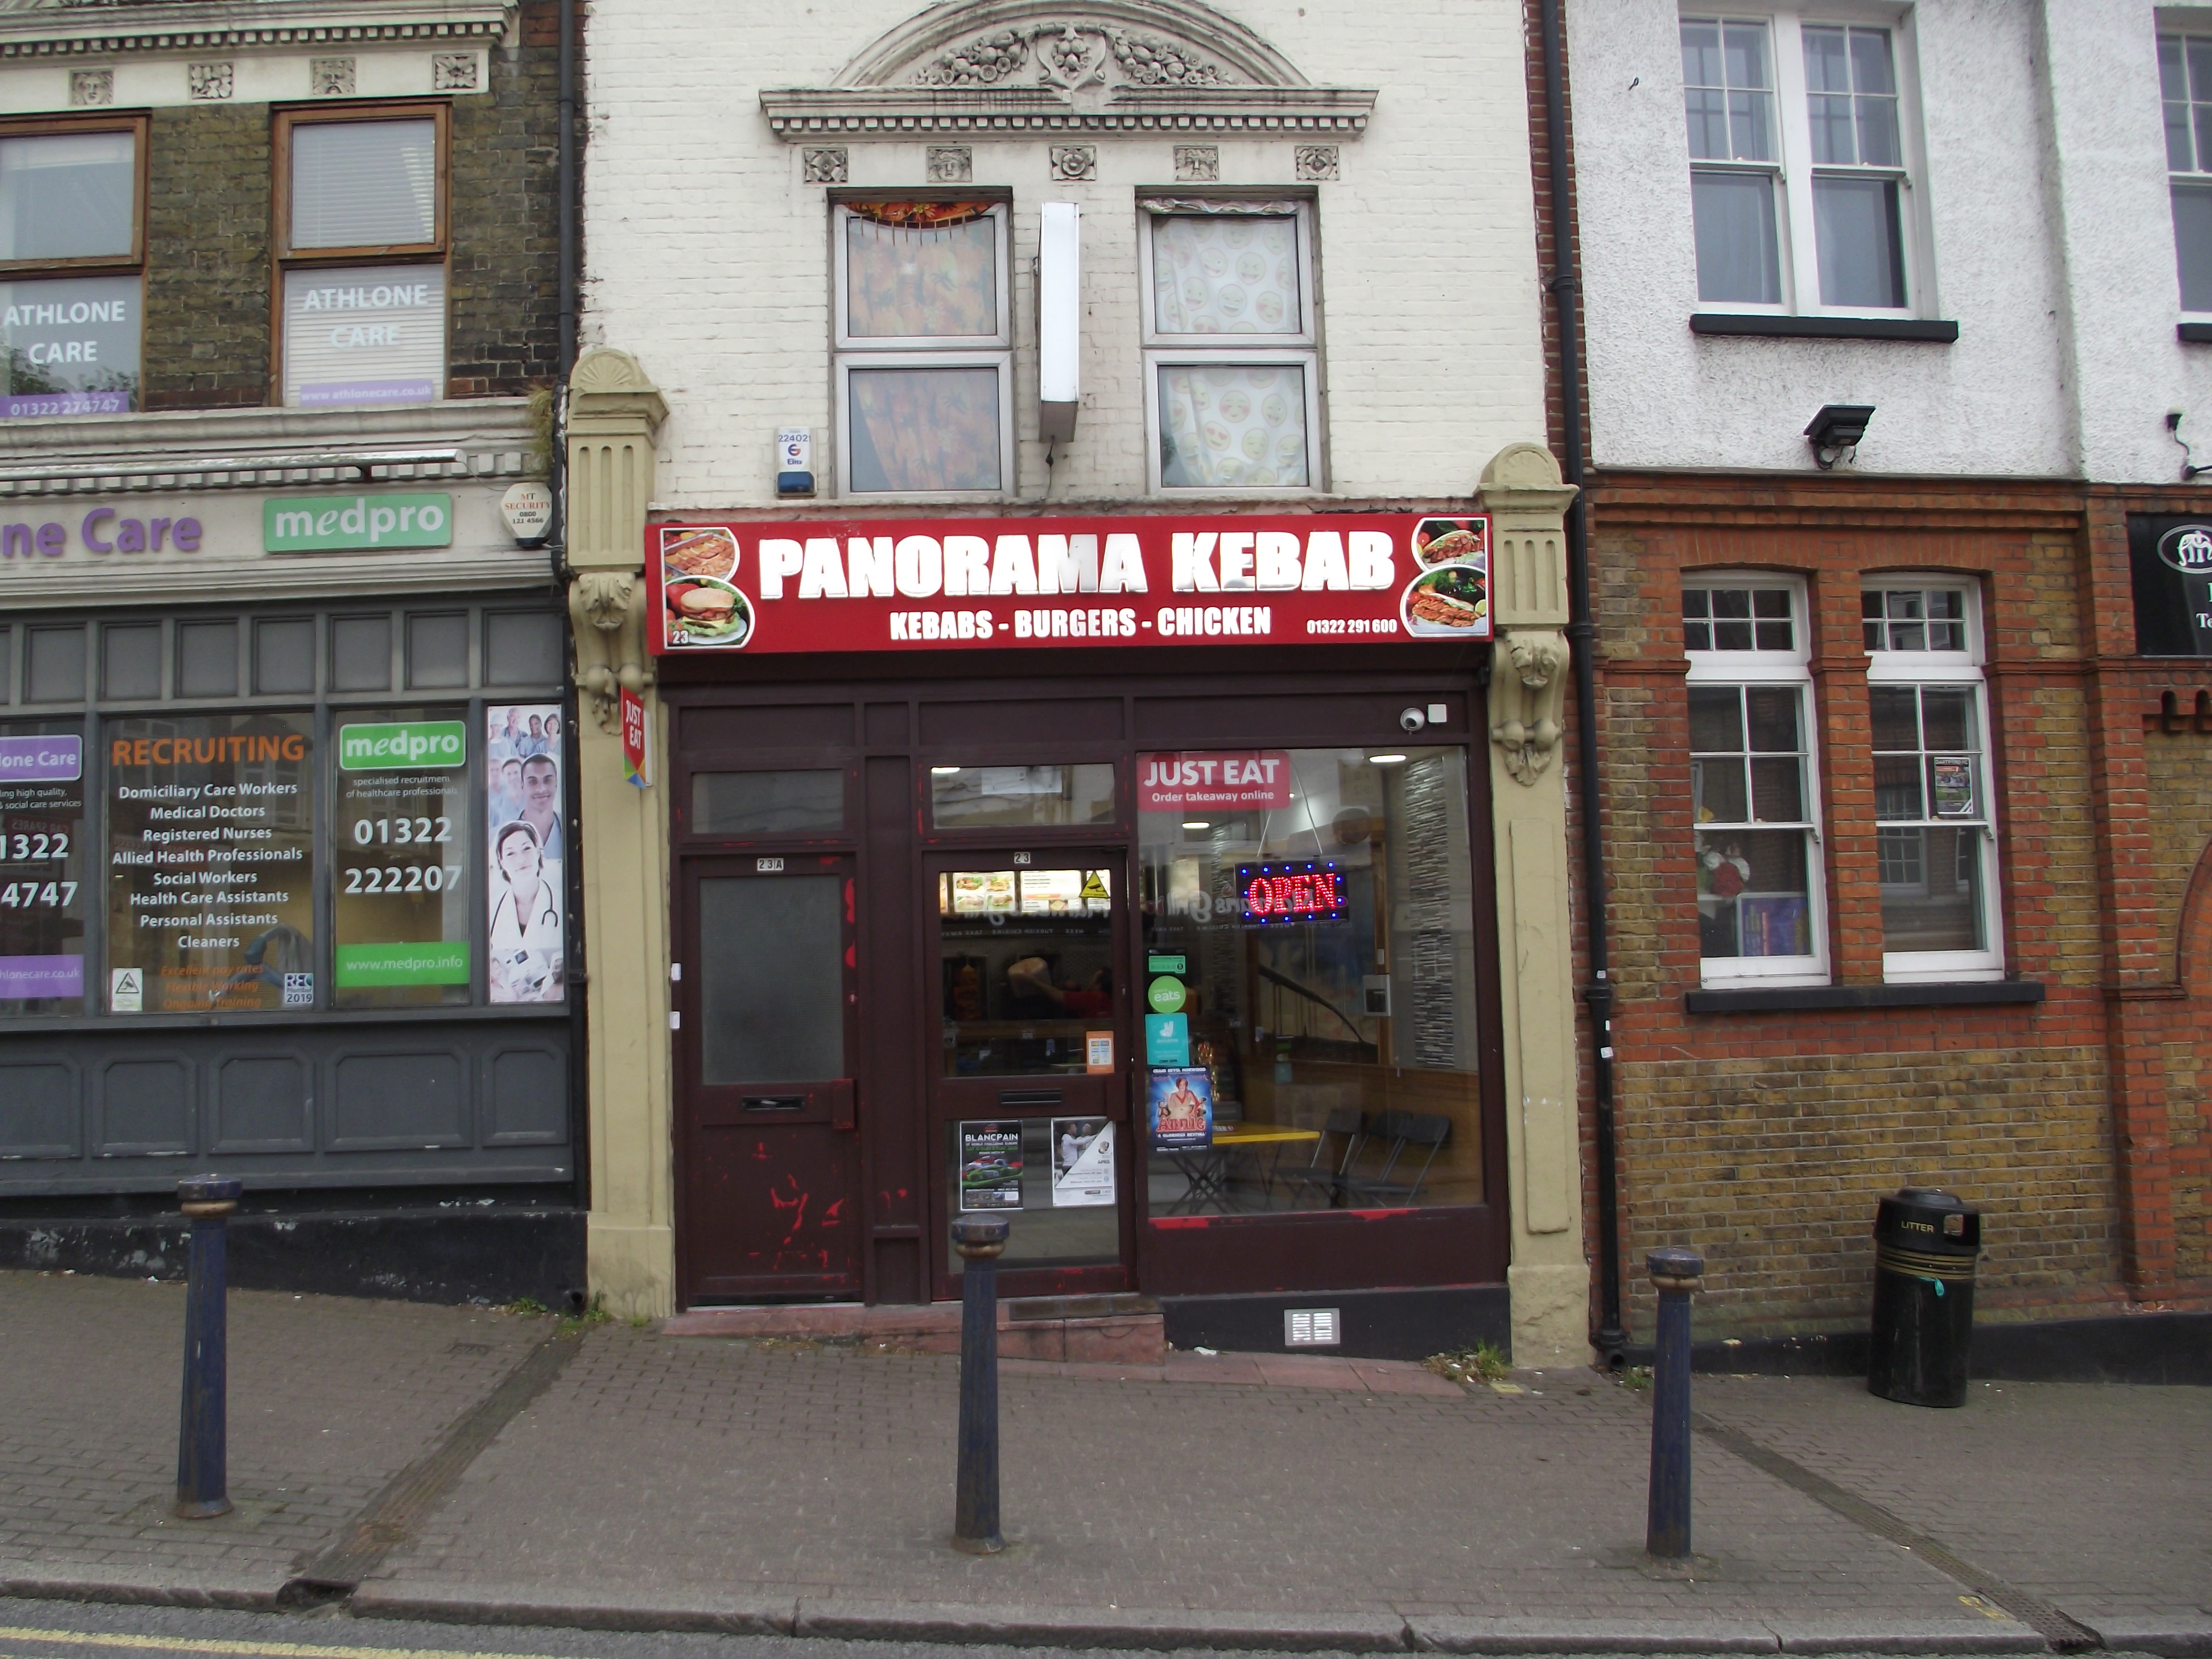 LEASE FOR SALE, Panorama Kebab, Dartford, Kent. Ref. 1730